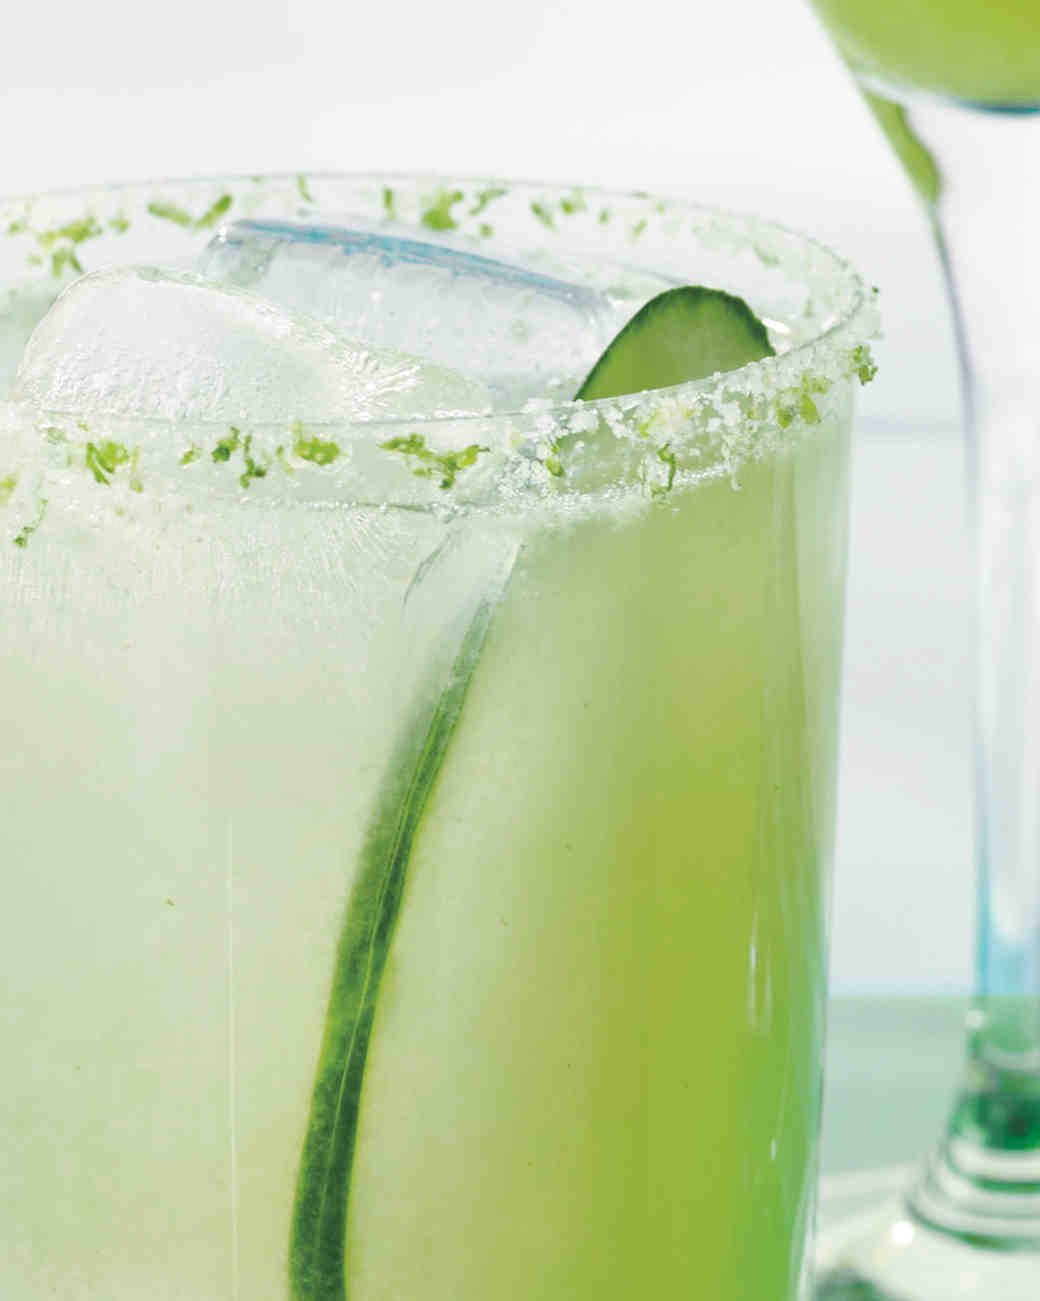 wedding-mocktail-recipes-agua-verde-109950-cocktails-su13-0915.jpg